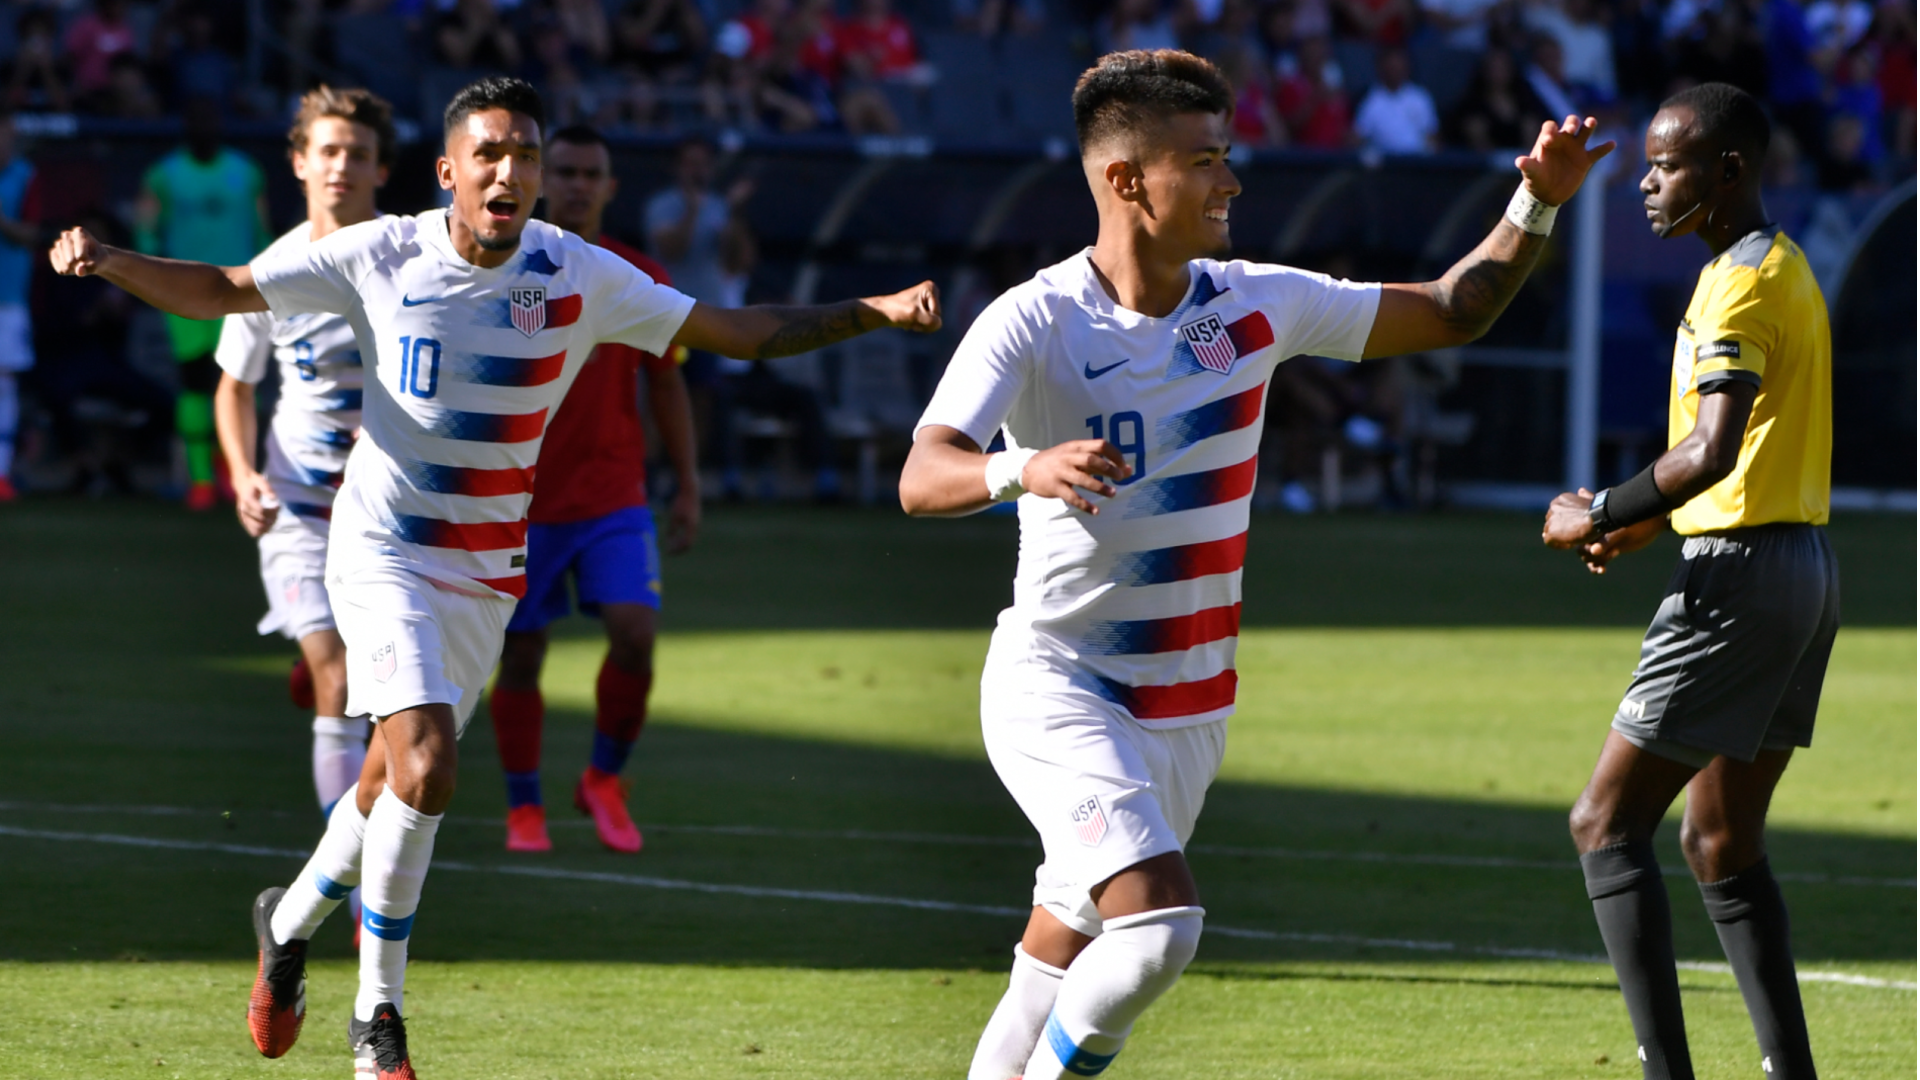 'I had a good feeling I was going to score' - Llanez recalls debut goal for USMNT